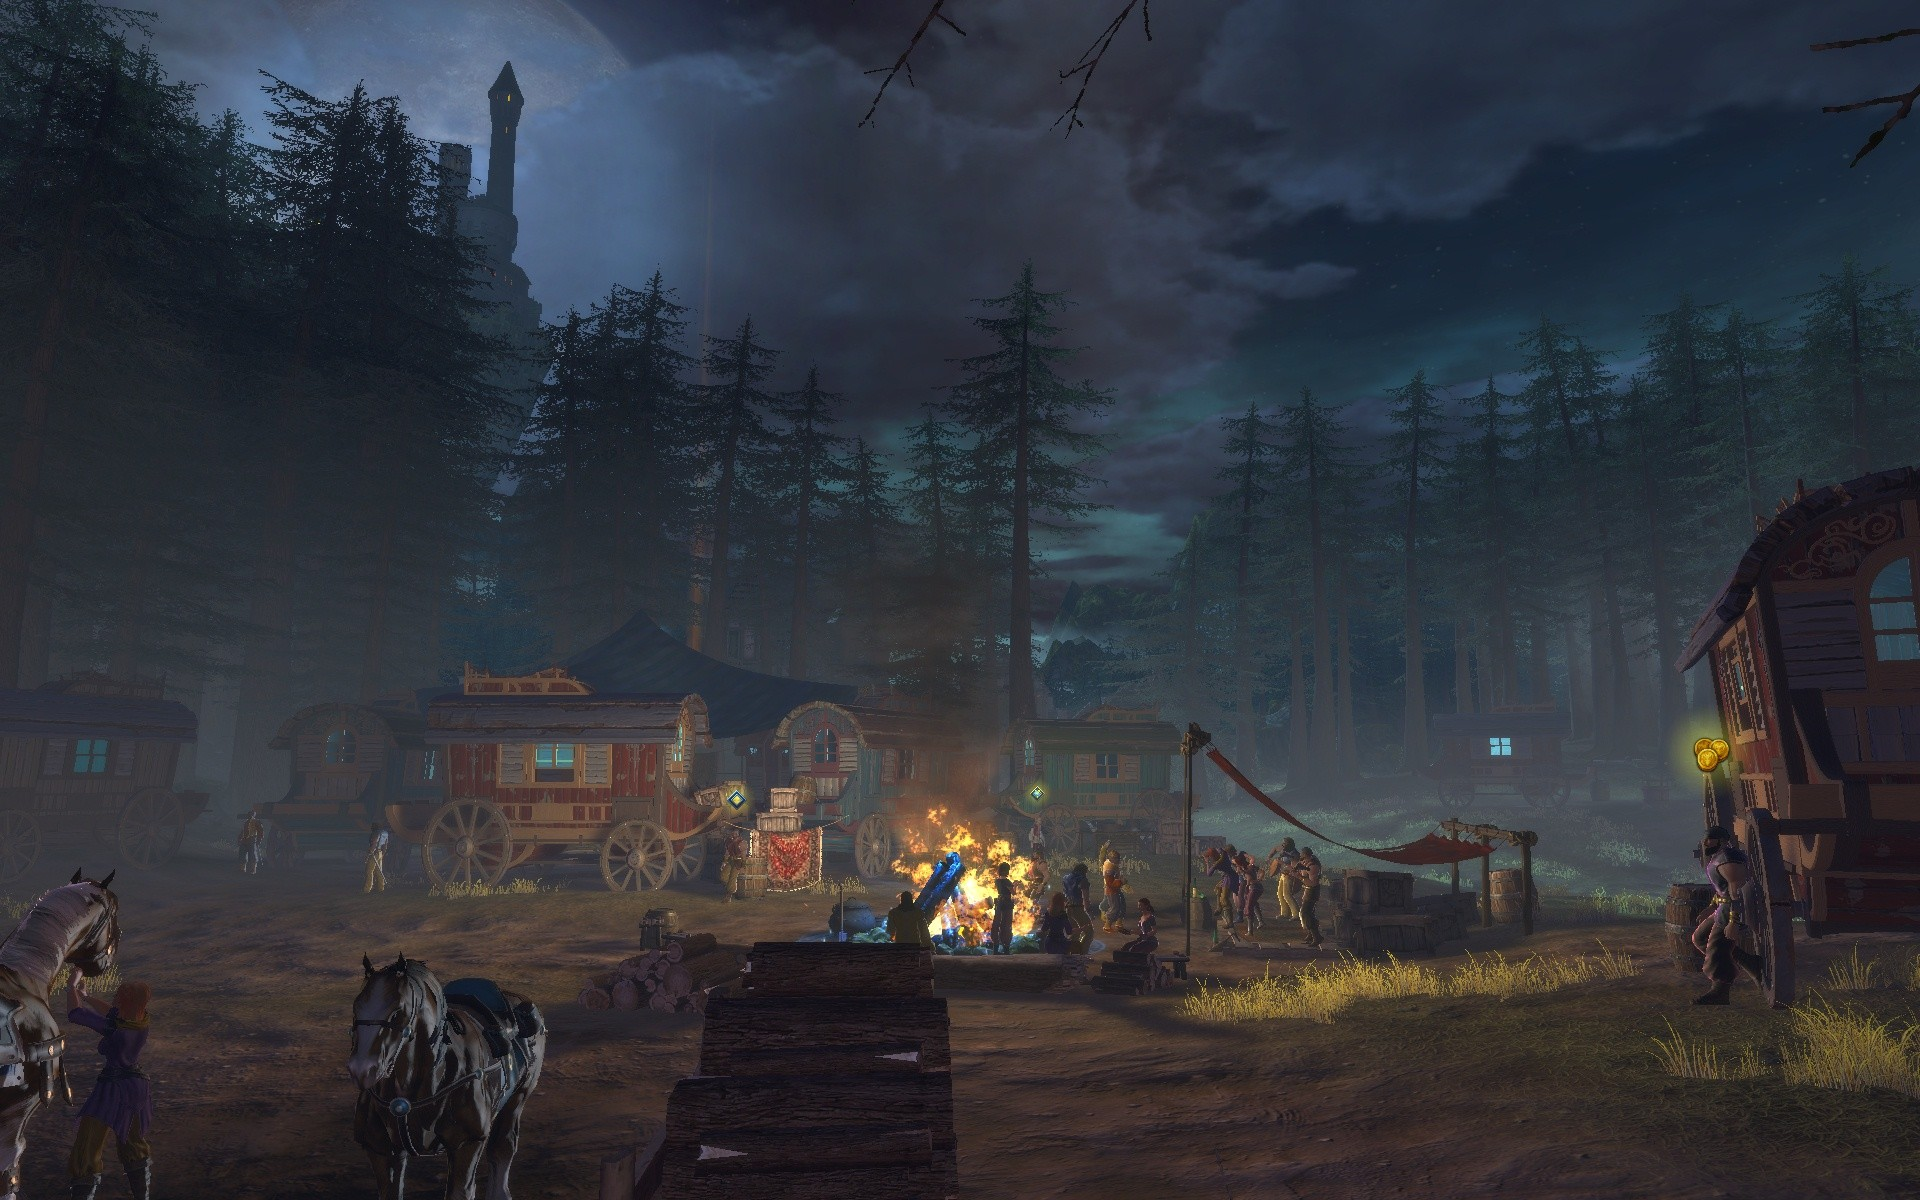 ArtStation - Art Direction Work: Game Content, Mike Apolis